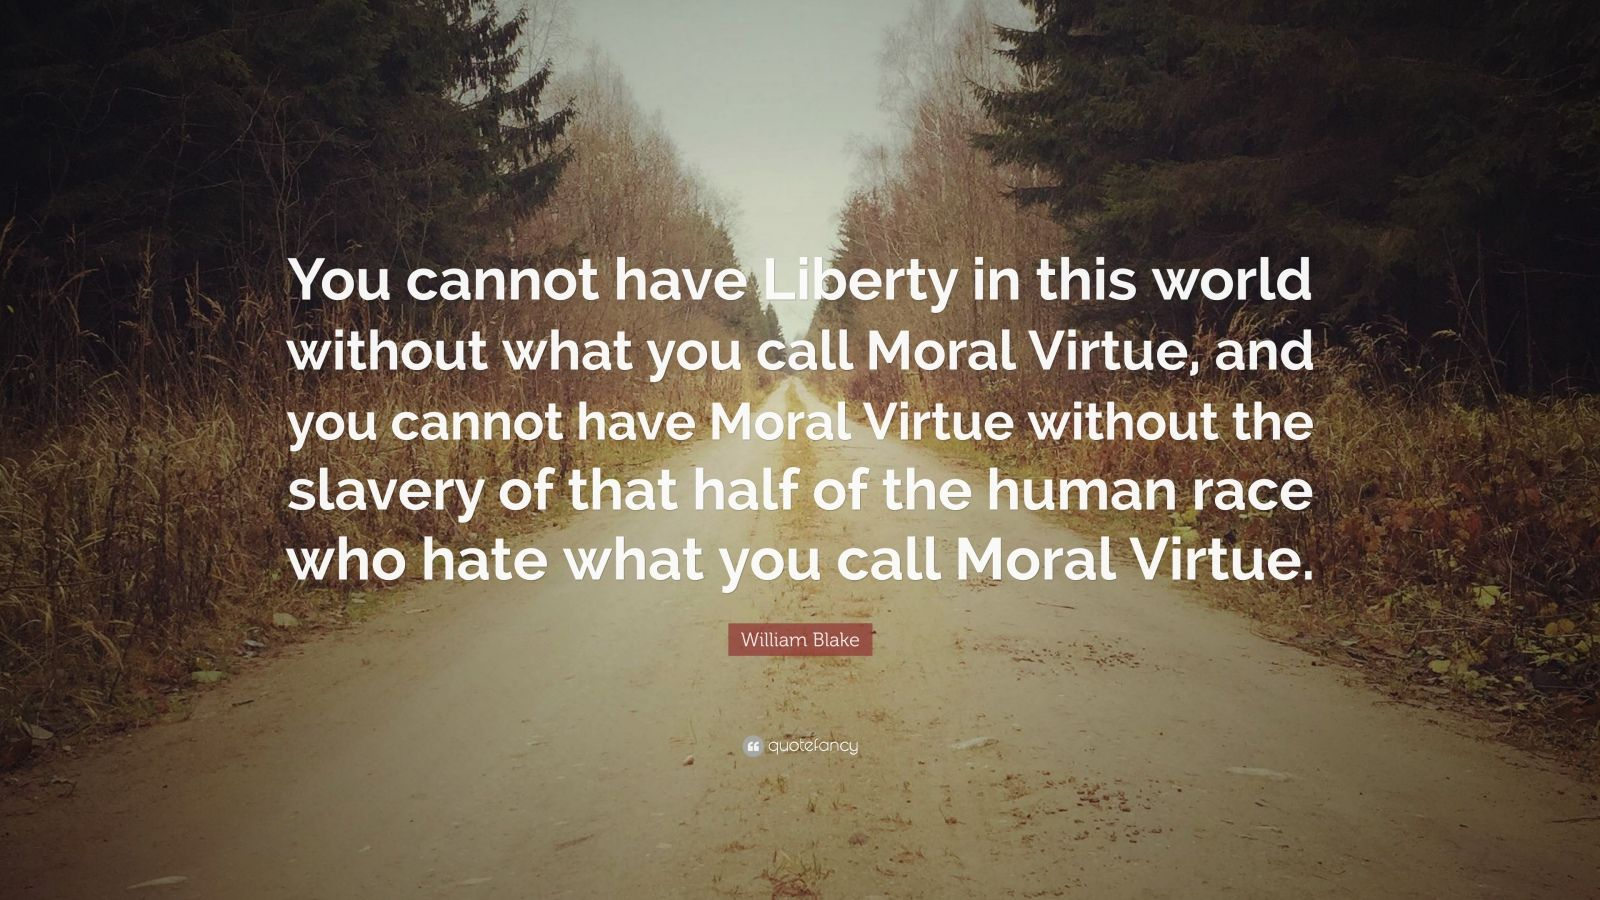 "William Blake Quote: ""You cannot have Liberty in this world without what you call Moral Virtue, and you cannot have Moral Virtue without the slavery of that half of the human race who hate what you call Moral Virtue."""